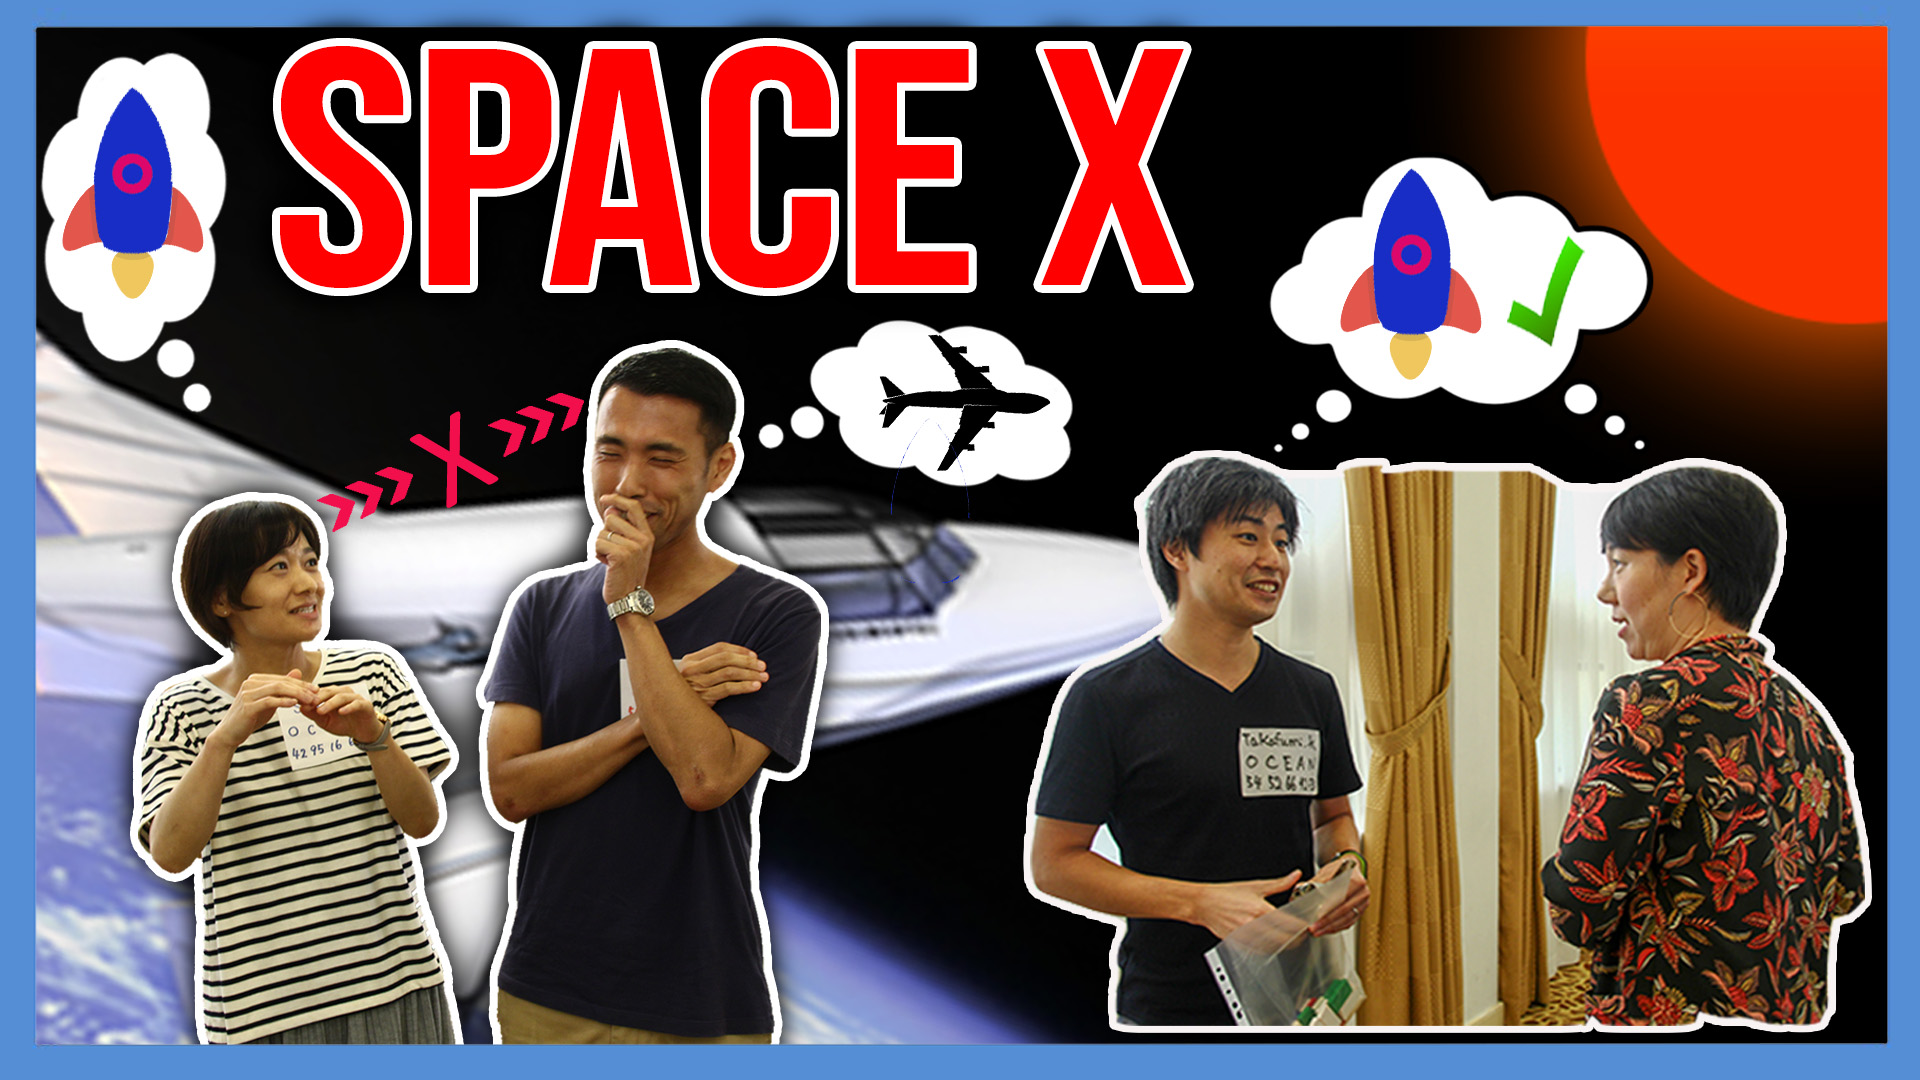 SpaceX team building Singapore activity